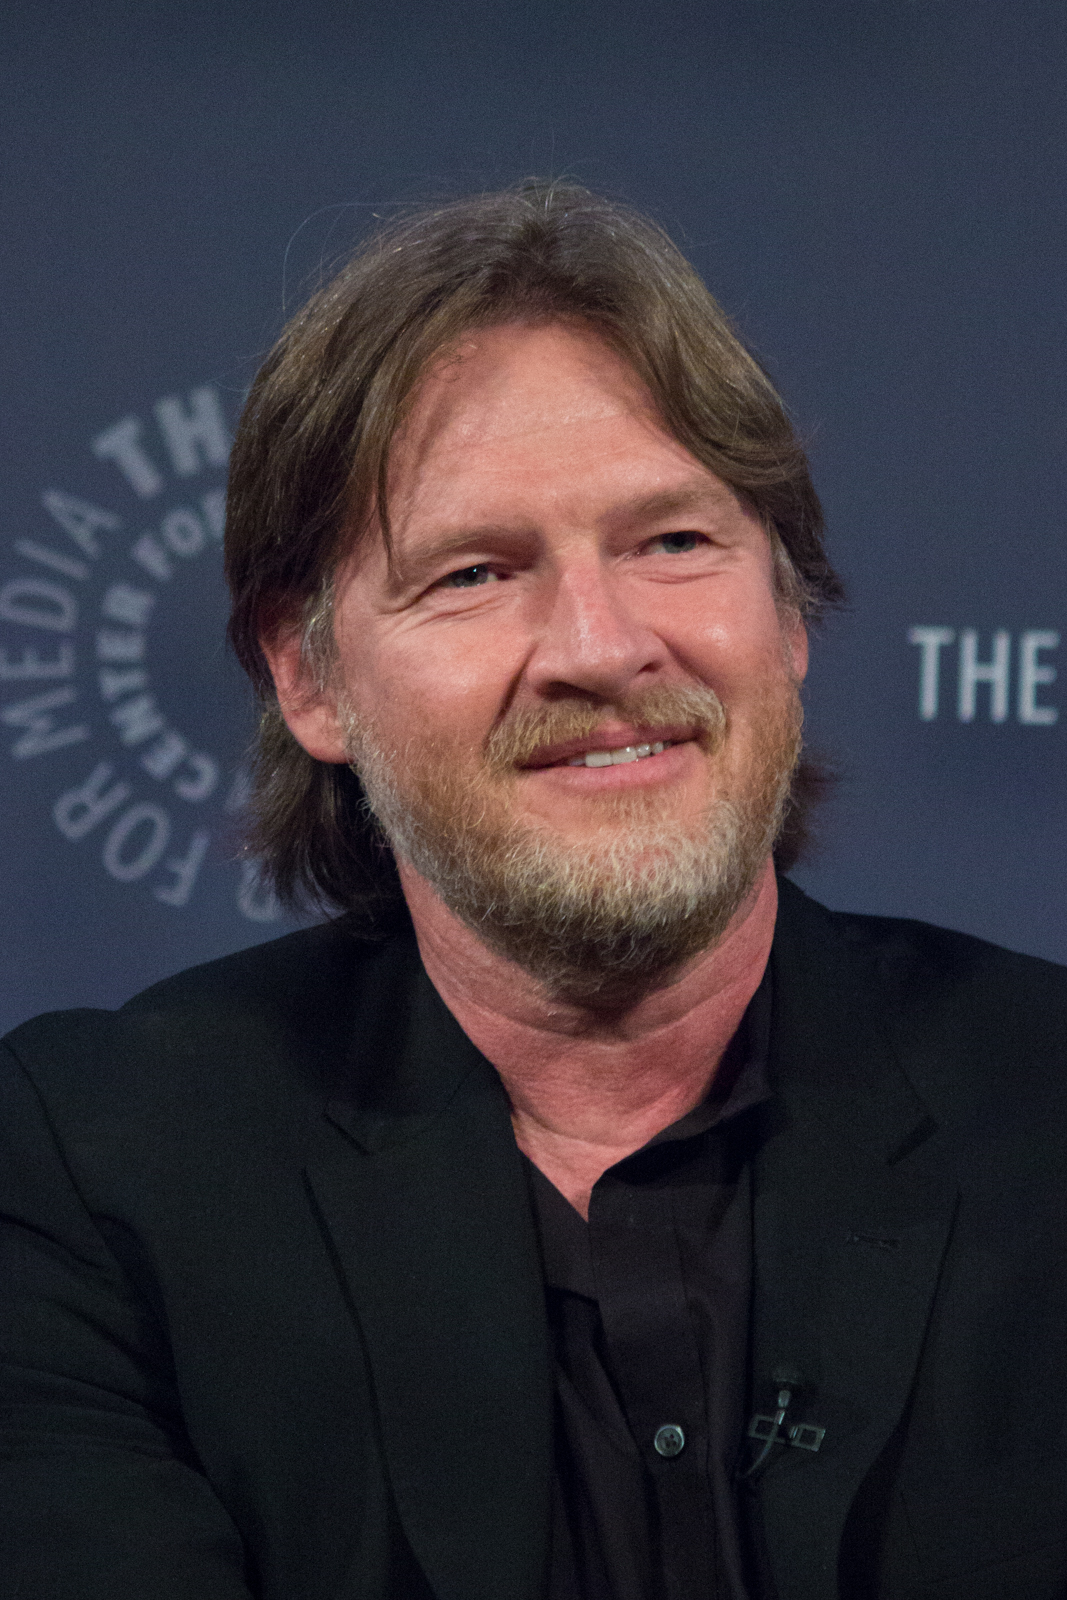 The 52-year old son of father Michael J. Logue and mother Elizabeth Logue Donal Logue in 2018 photo. Donal Logue earned a  million dollar salary - leaving the net worth at 3 million in 2018